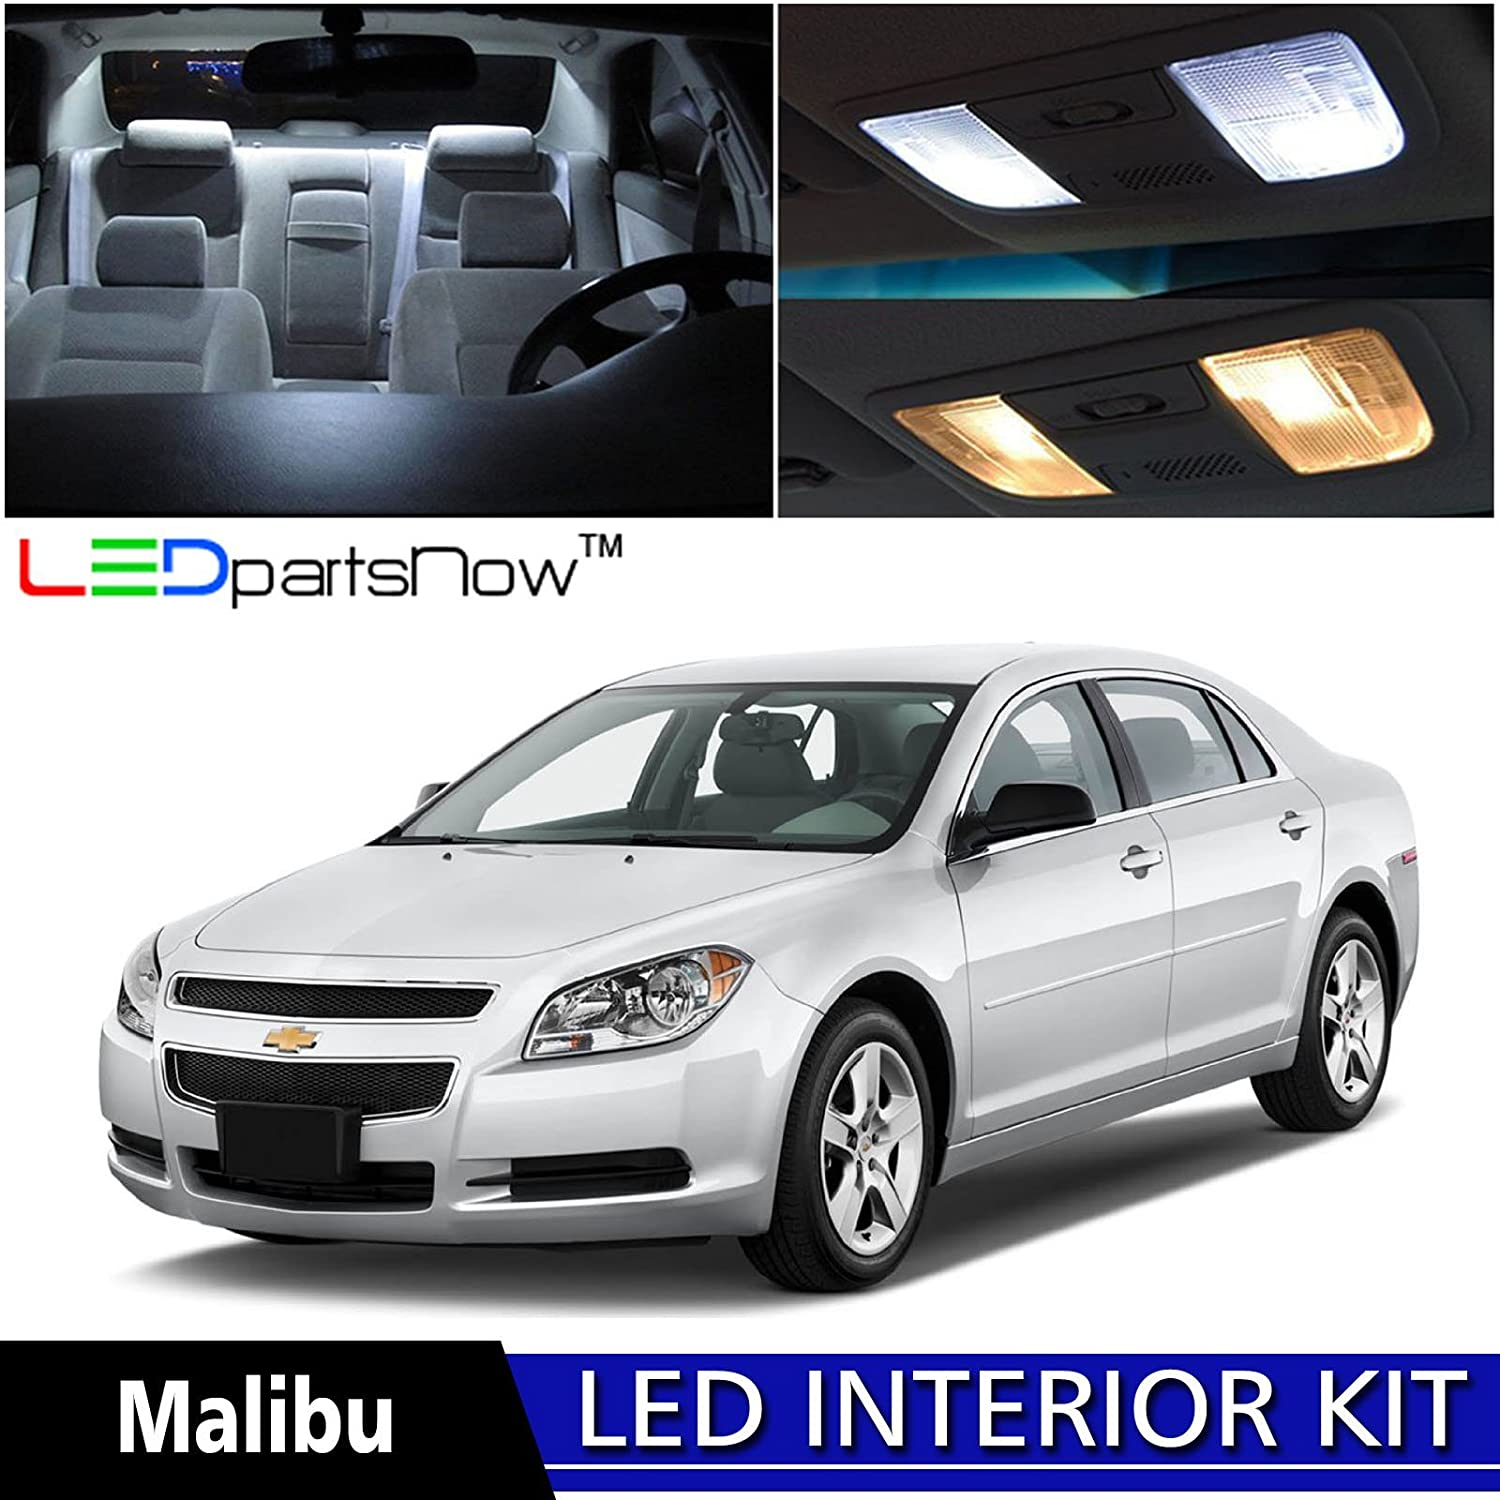 2010 Malibu Interior Lights